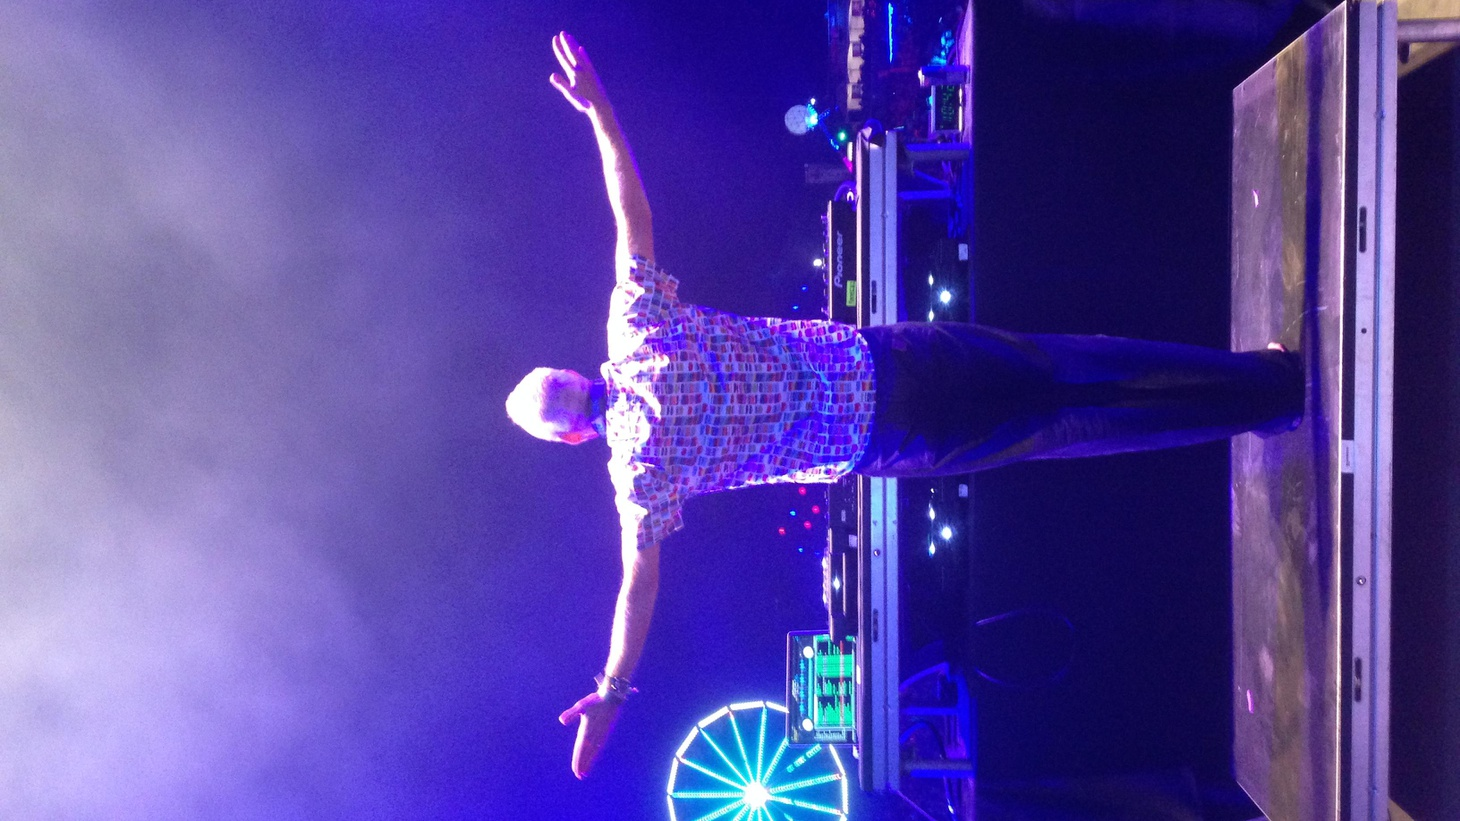 As Fatboy Slim, Norman Cook has been a mainstay on the dance music circuit for the last couple decades with a no-nonsense brand of fun and funky grooves.